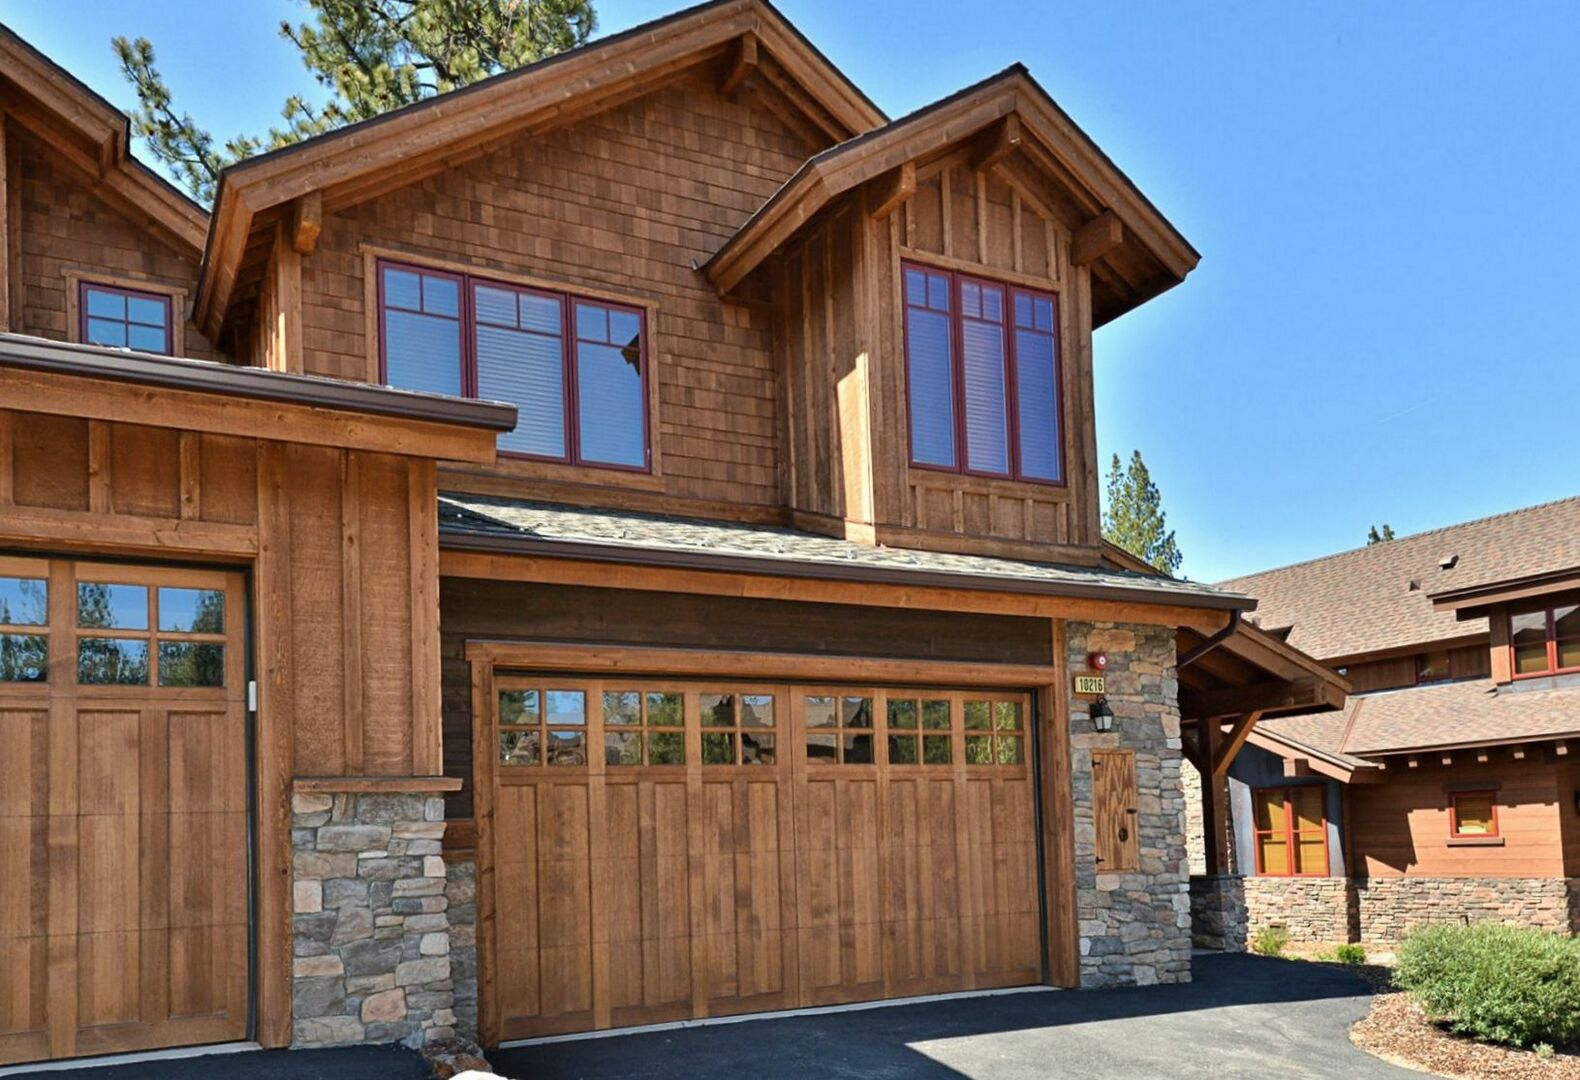 An Image of the Garage Attached to Our Vacation Rental in Truckee CA.